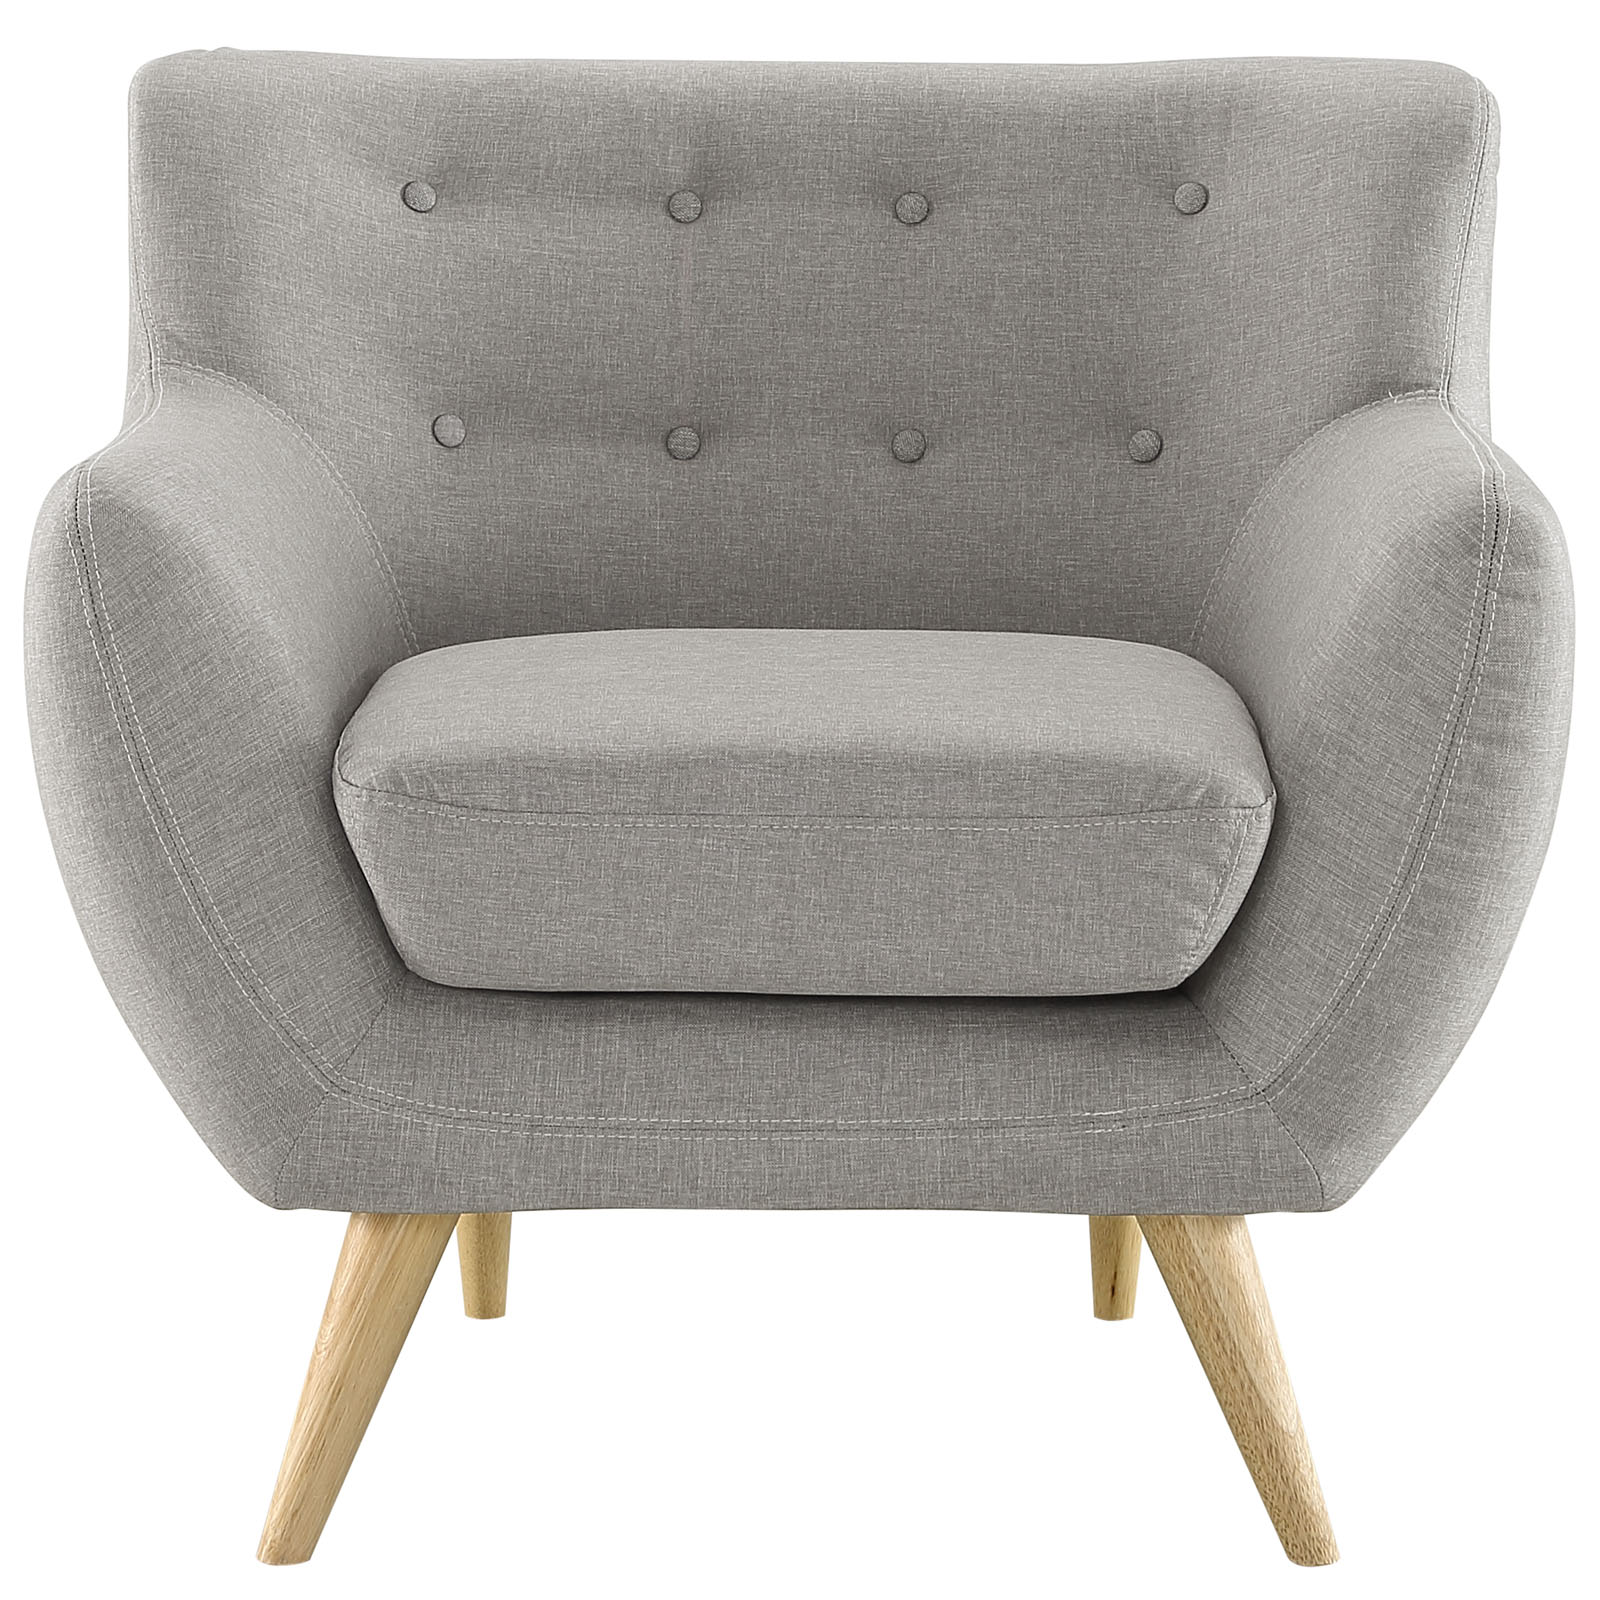 Modern Contemporary Armchair, Grey Fabric by